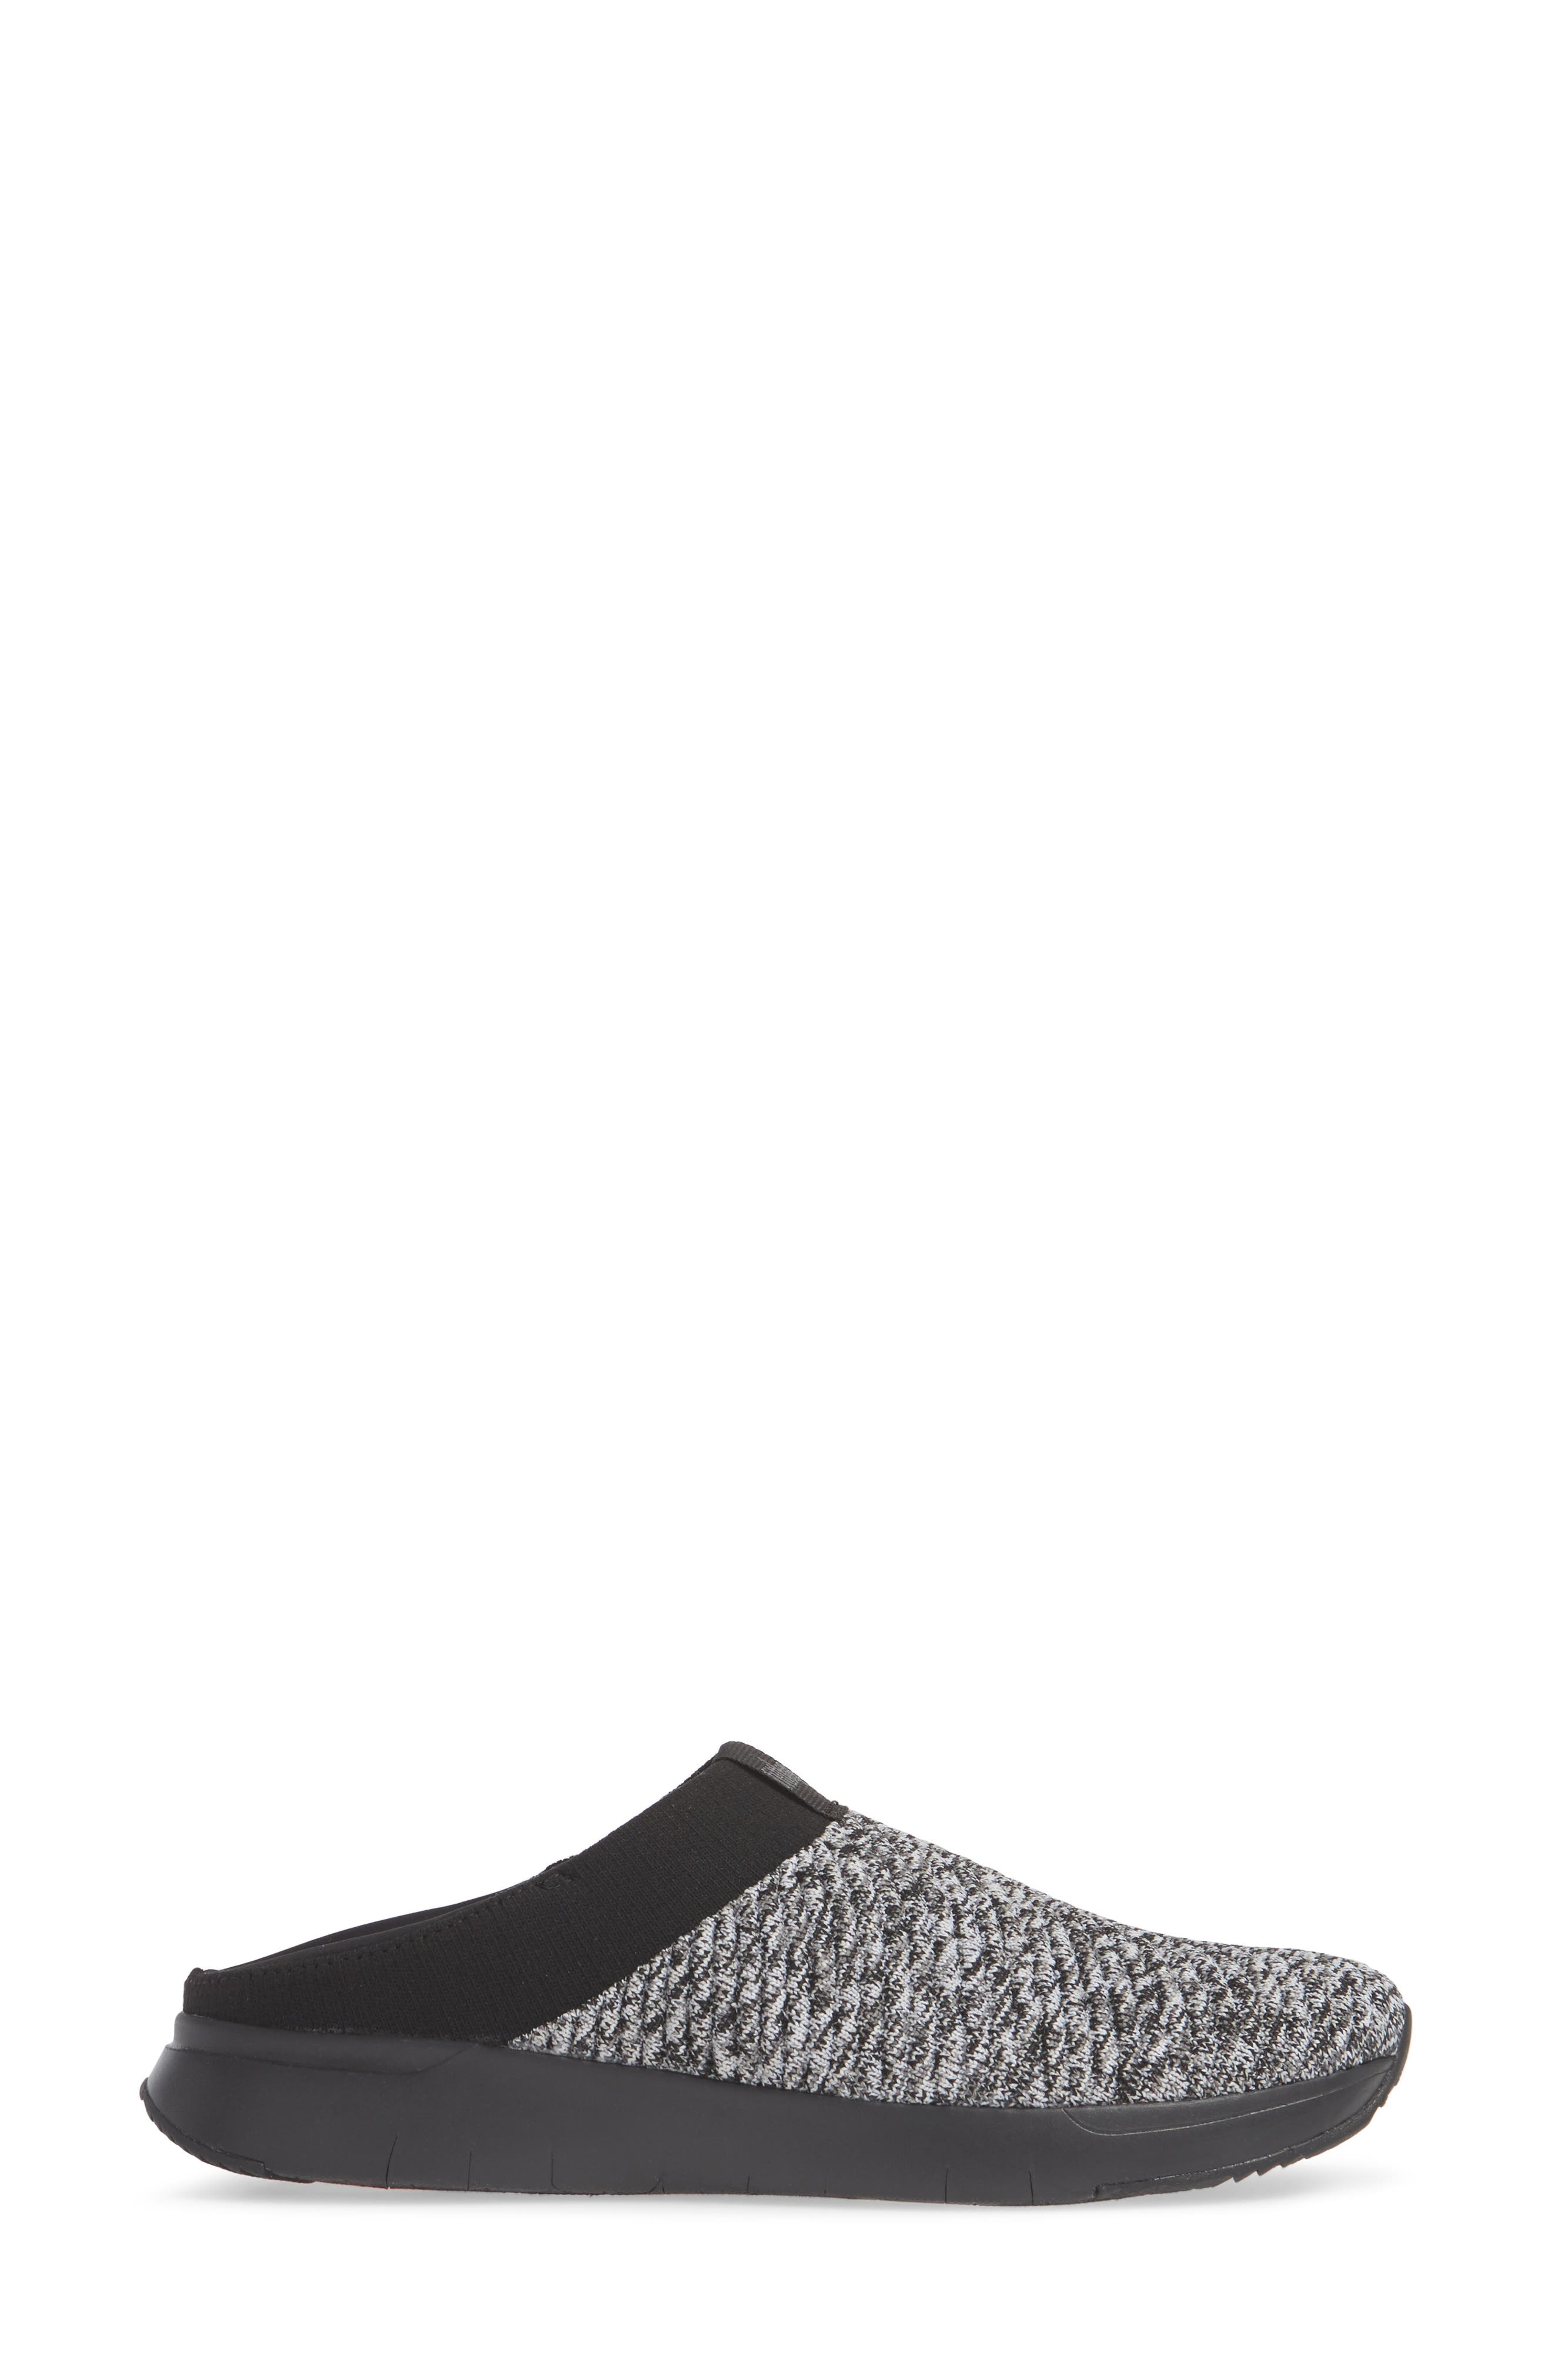 Artknit<sup>™</sup> Convertible Slip-On Sneaker,                             Alternate thumbnail 4, color,                             BLACK MIX